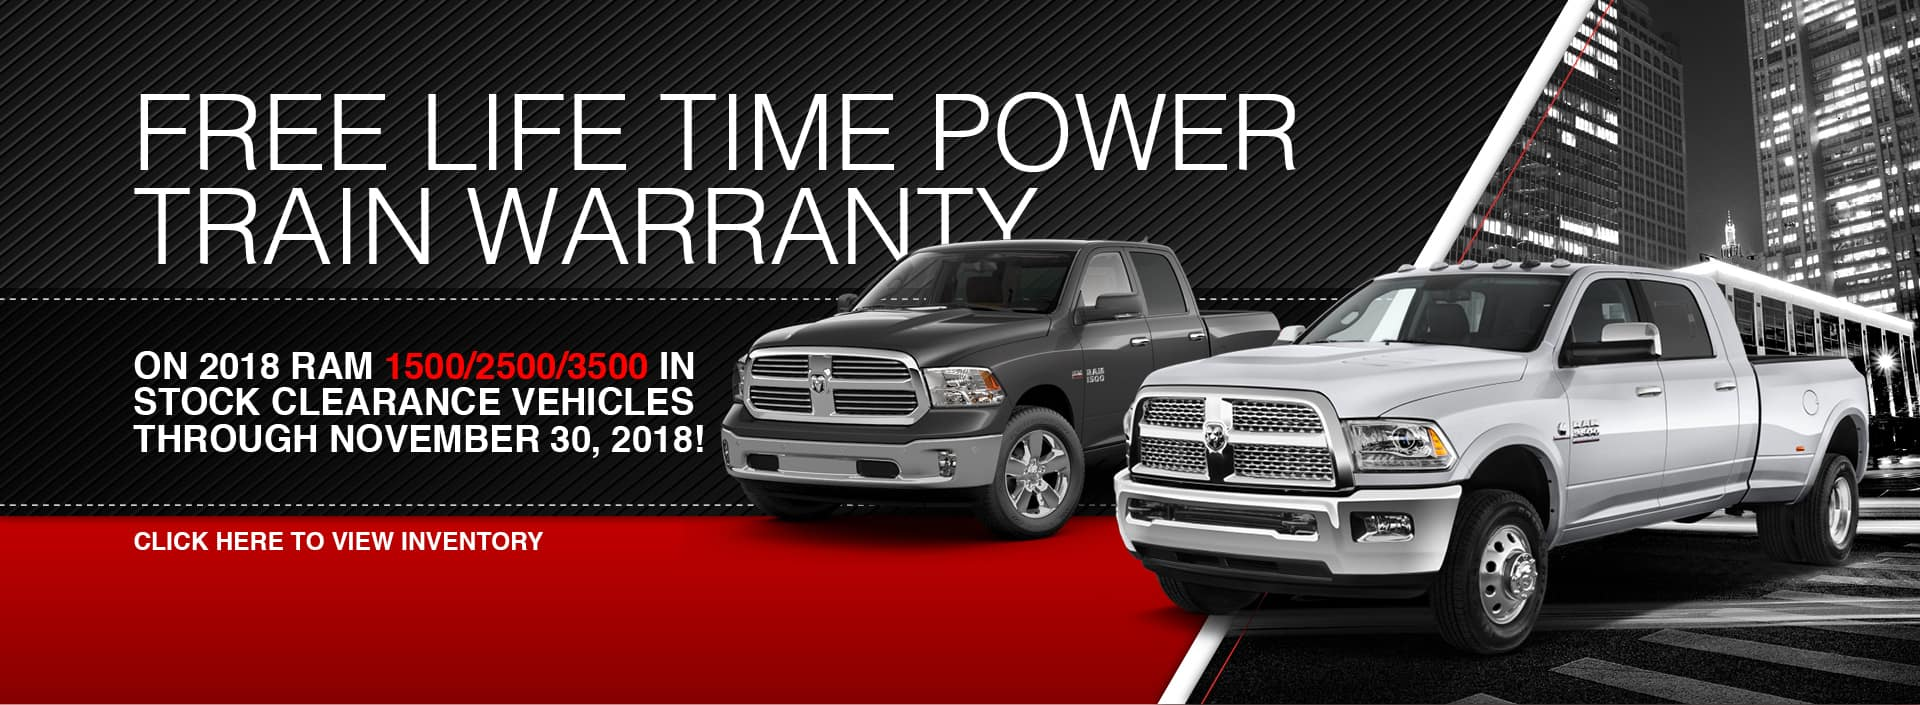 Free Life Time Power Train Warranty at Waseca RAM in Waseca, MN